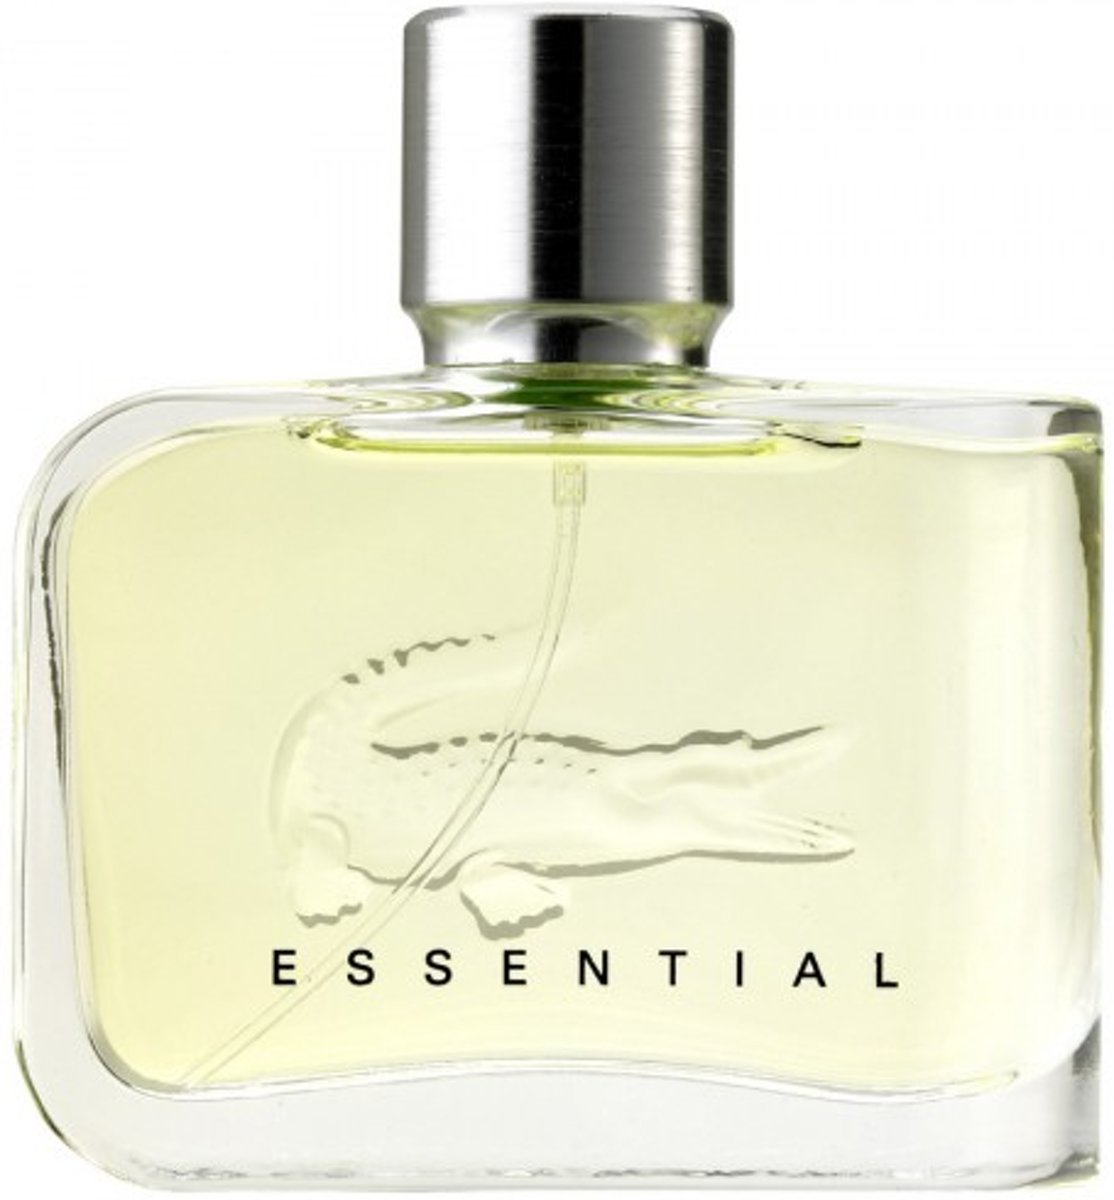 MULTI BUNDEL 2 stuks Lacoste Essential Eau De Toilette Spray 75ml